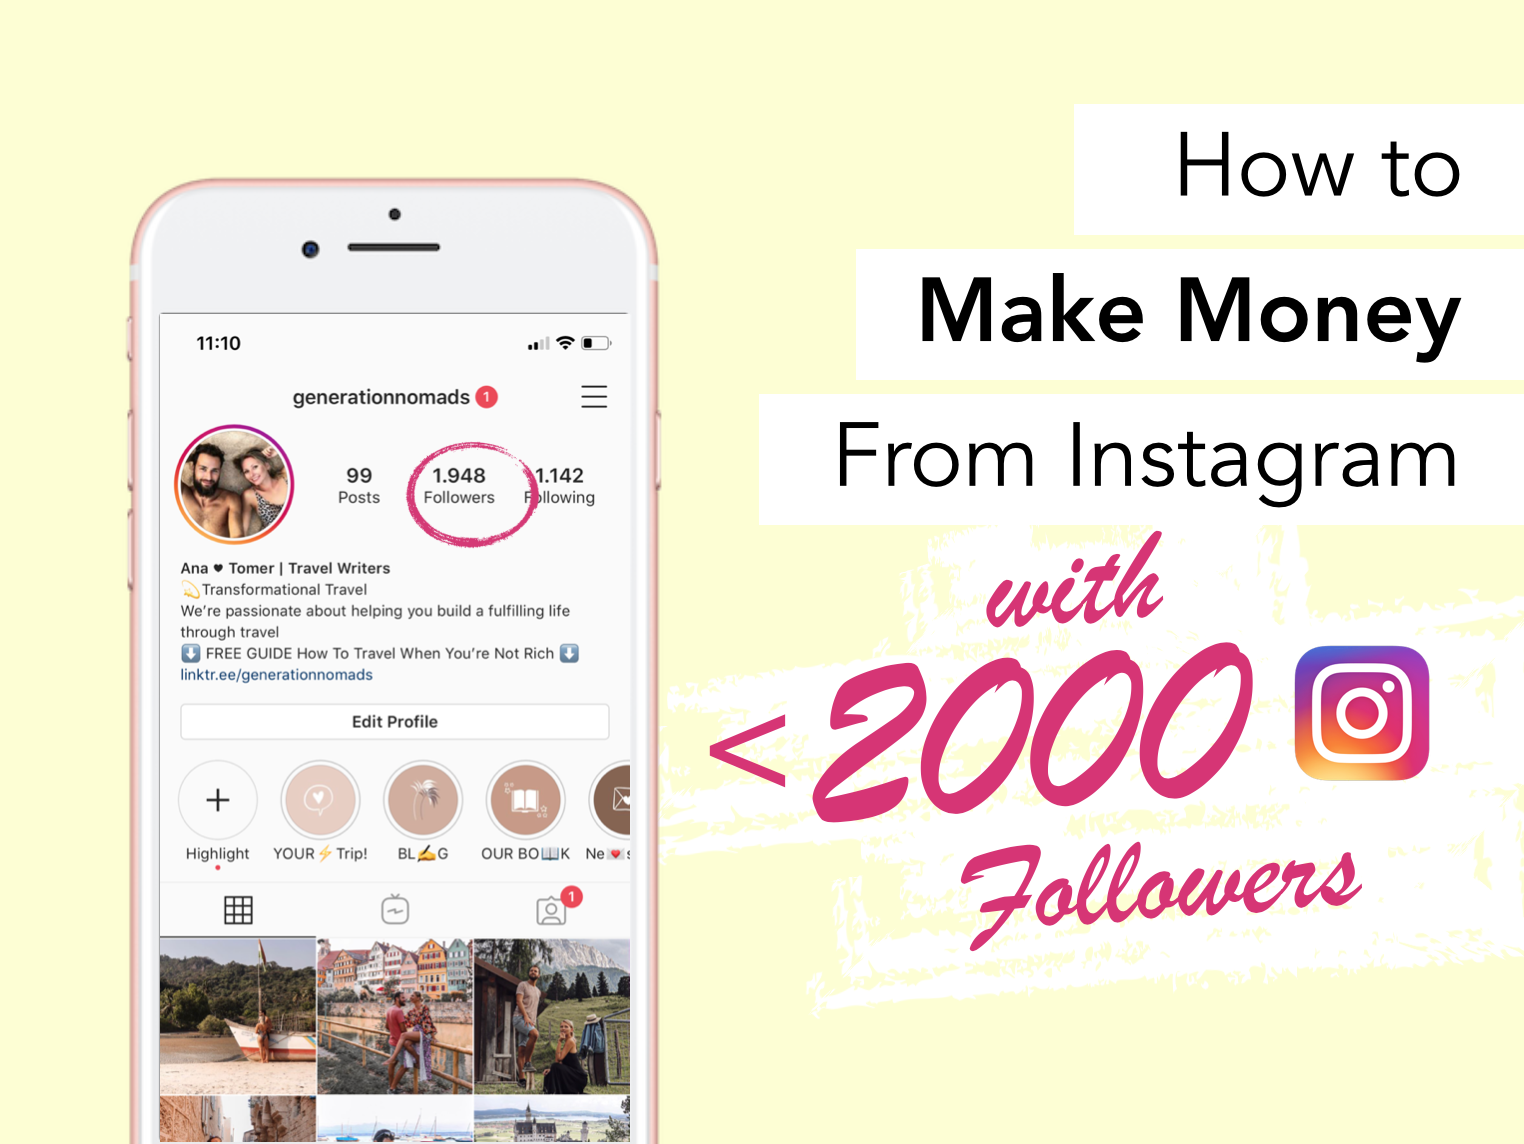 How To Make Money On Instagram With Under 2000 Followers In 2021 Generation Nomads